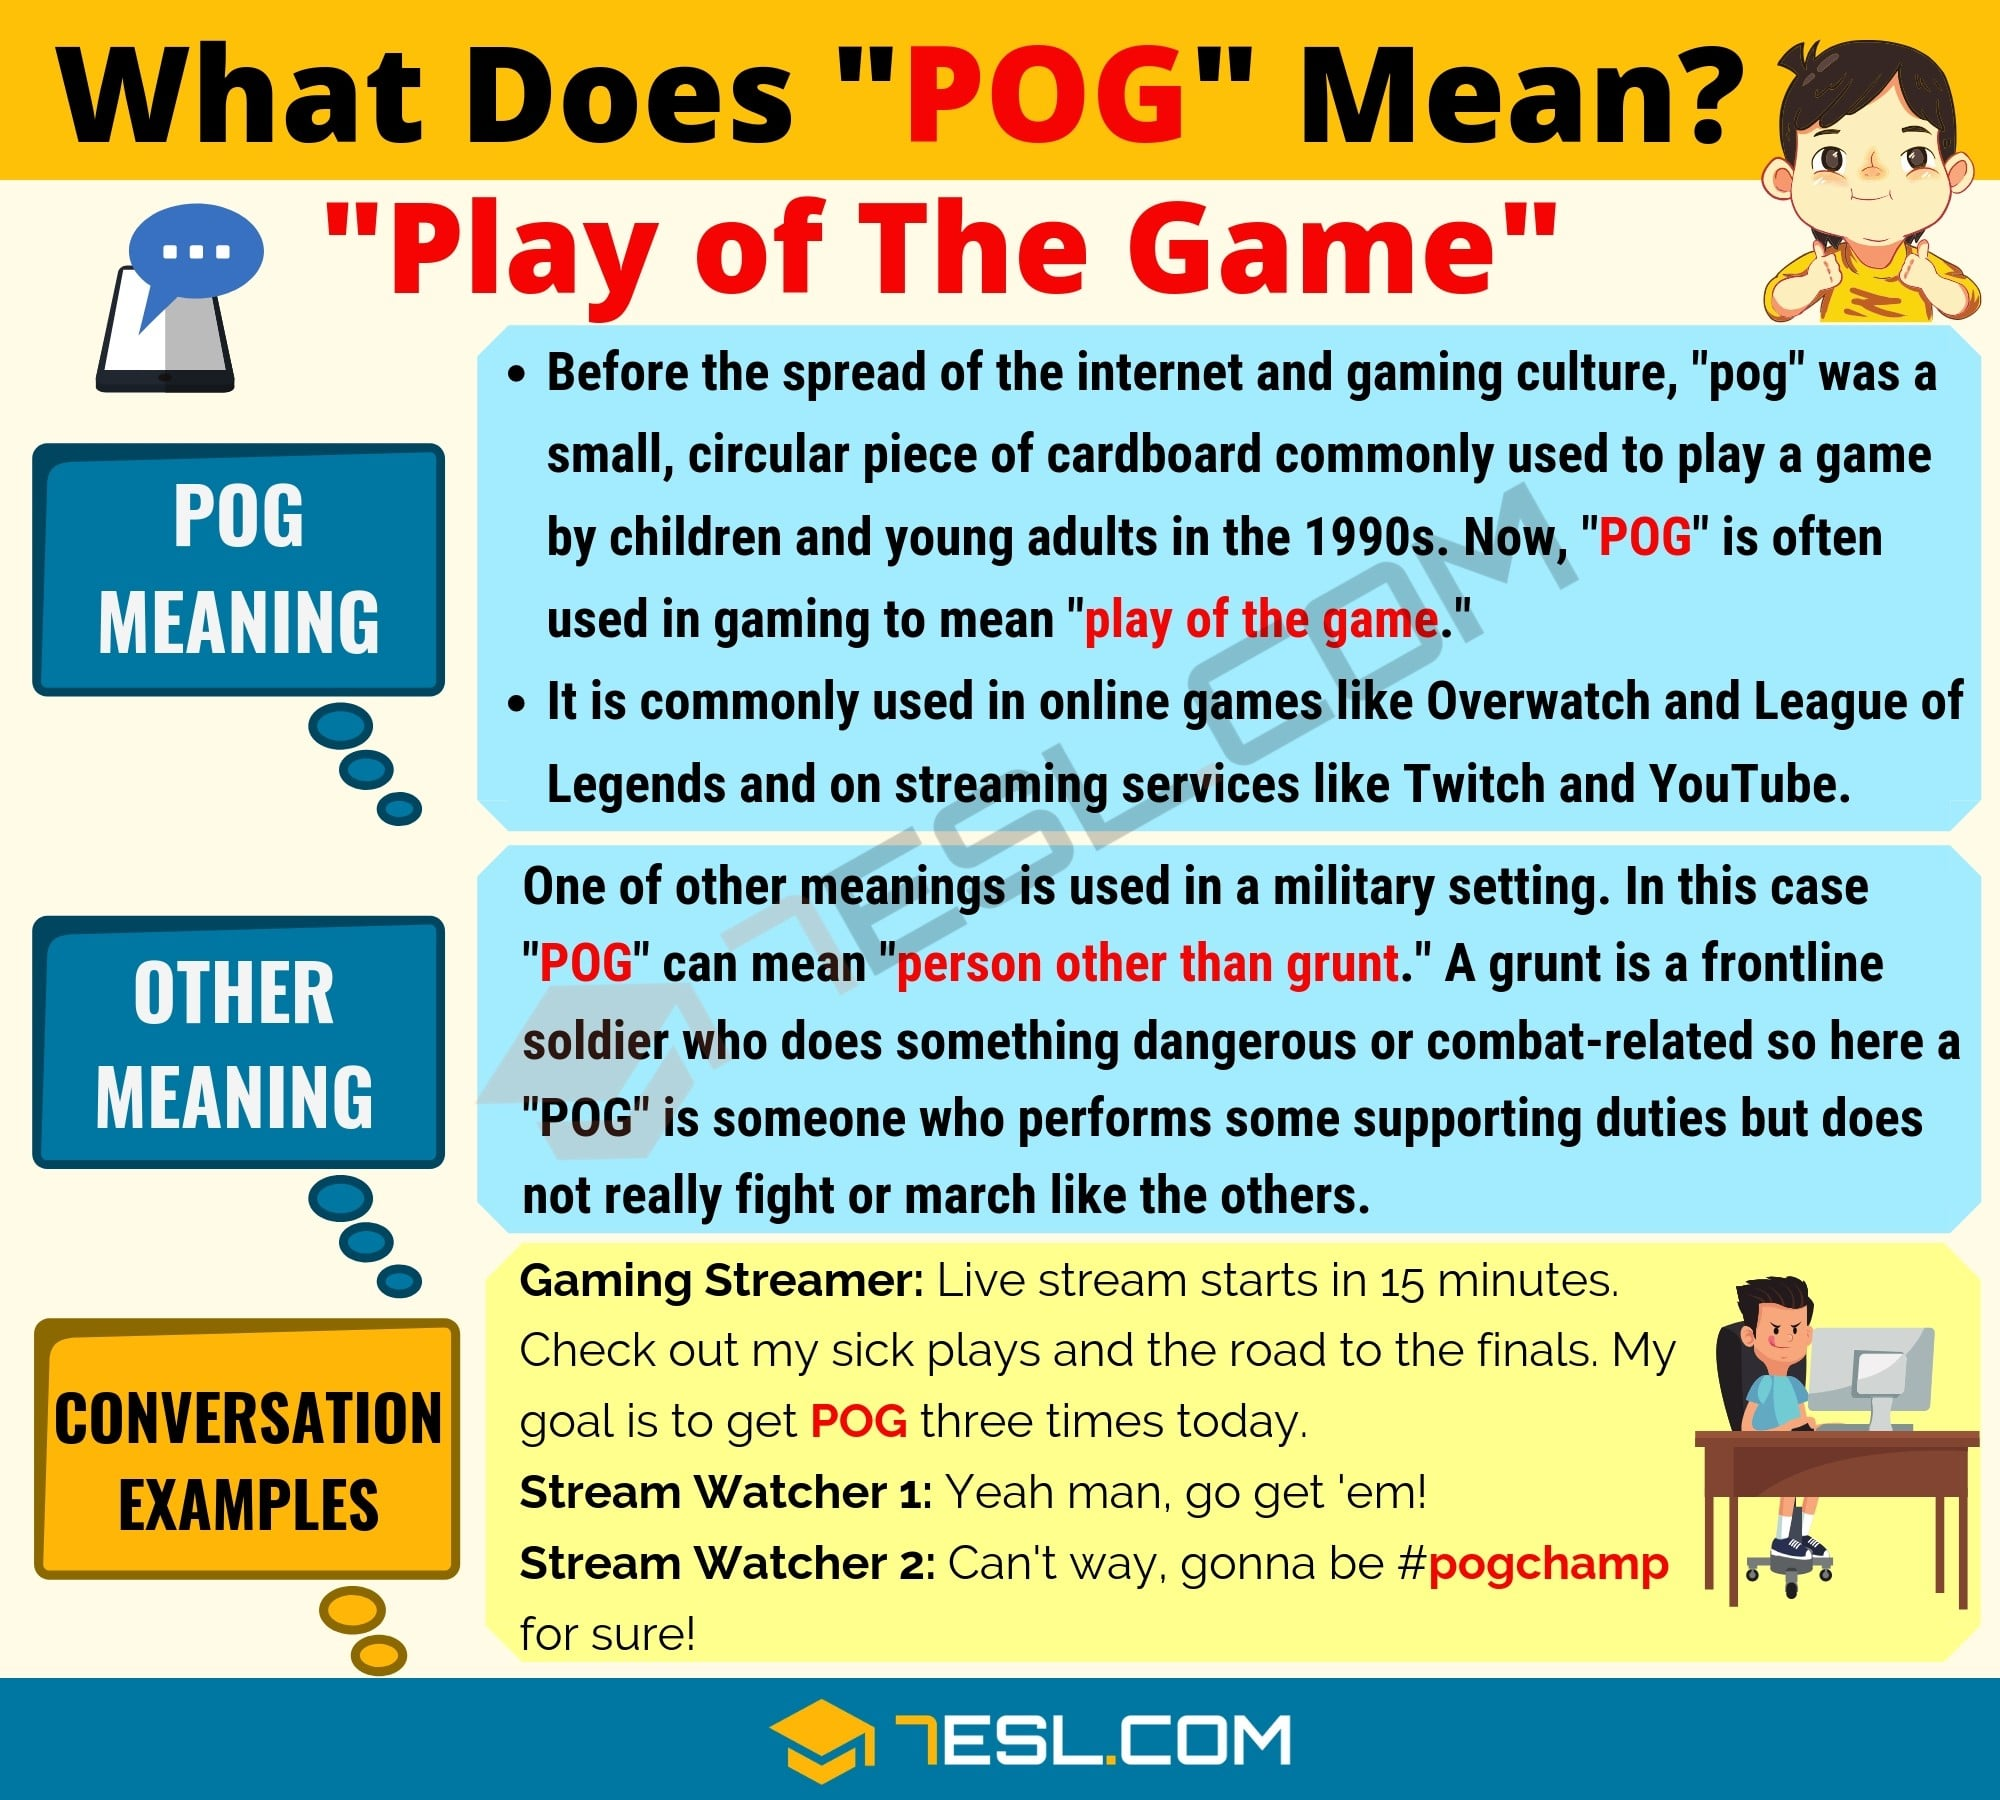 Pog Meaning What Does Pog Mean And Stand For With Cool Examples 7esl